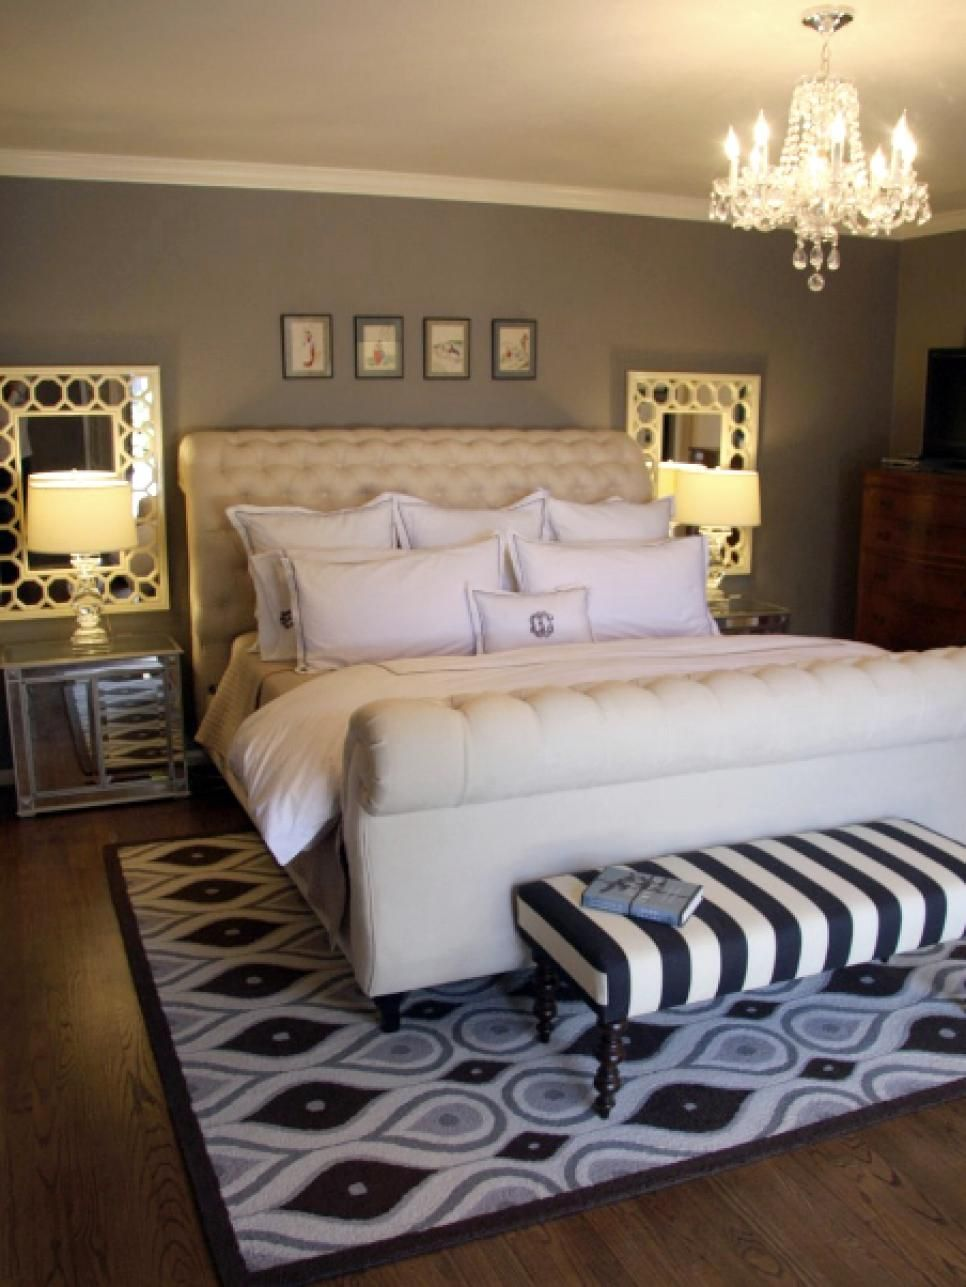 When It Comes To Stylish, Sexy Bedroom Makeovers, Find Design Inspiration  Here. Let